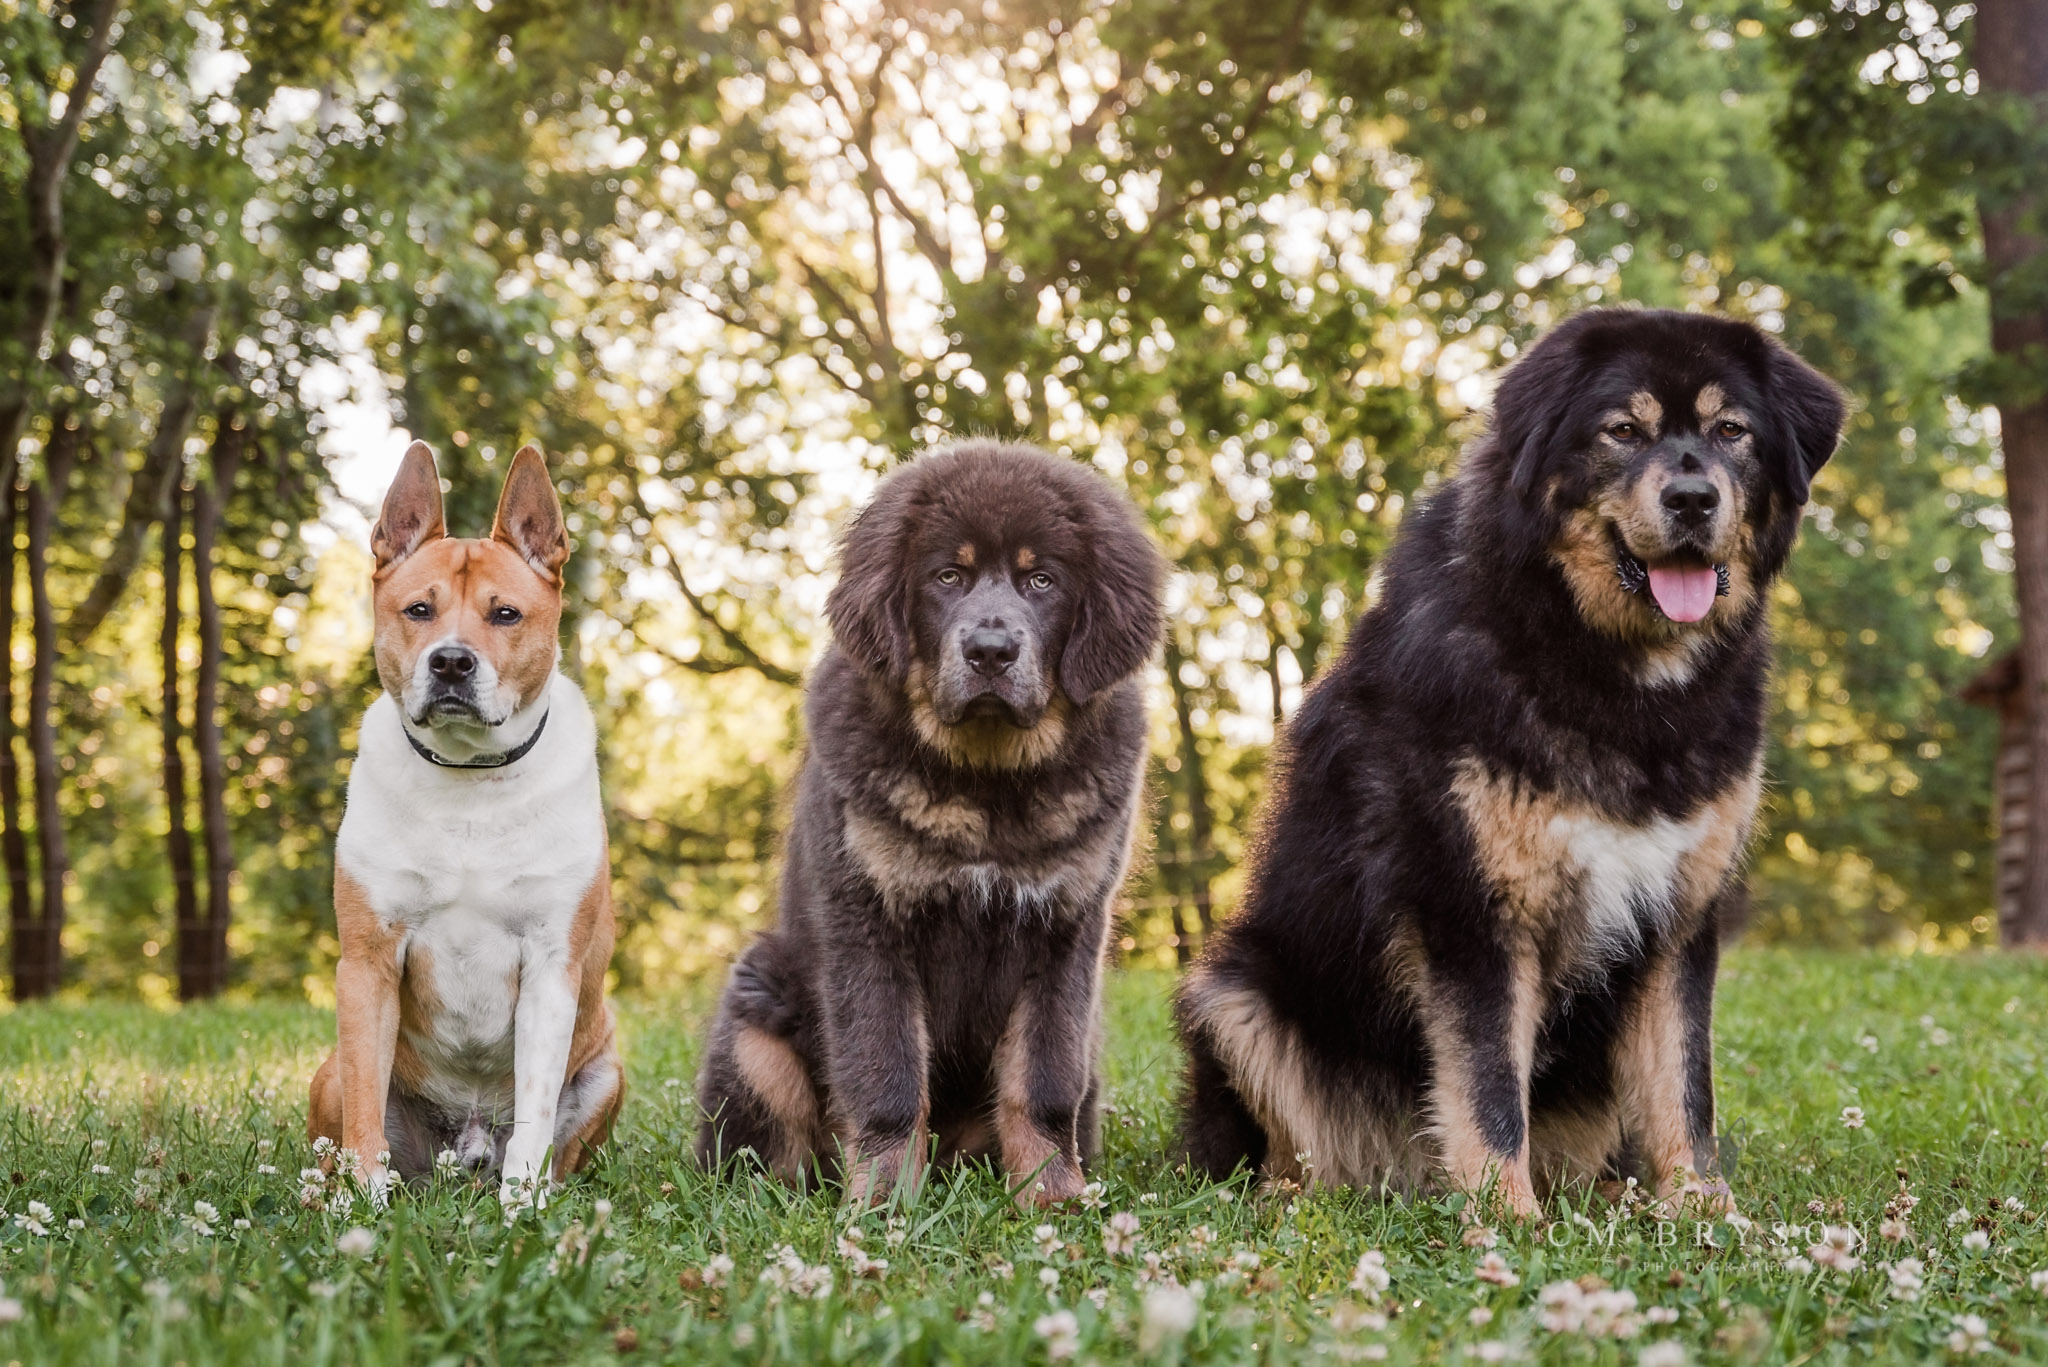 A photograph of all your dogs together is one of the most requested shots by clients of professional Atlanta dog photographer.